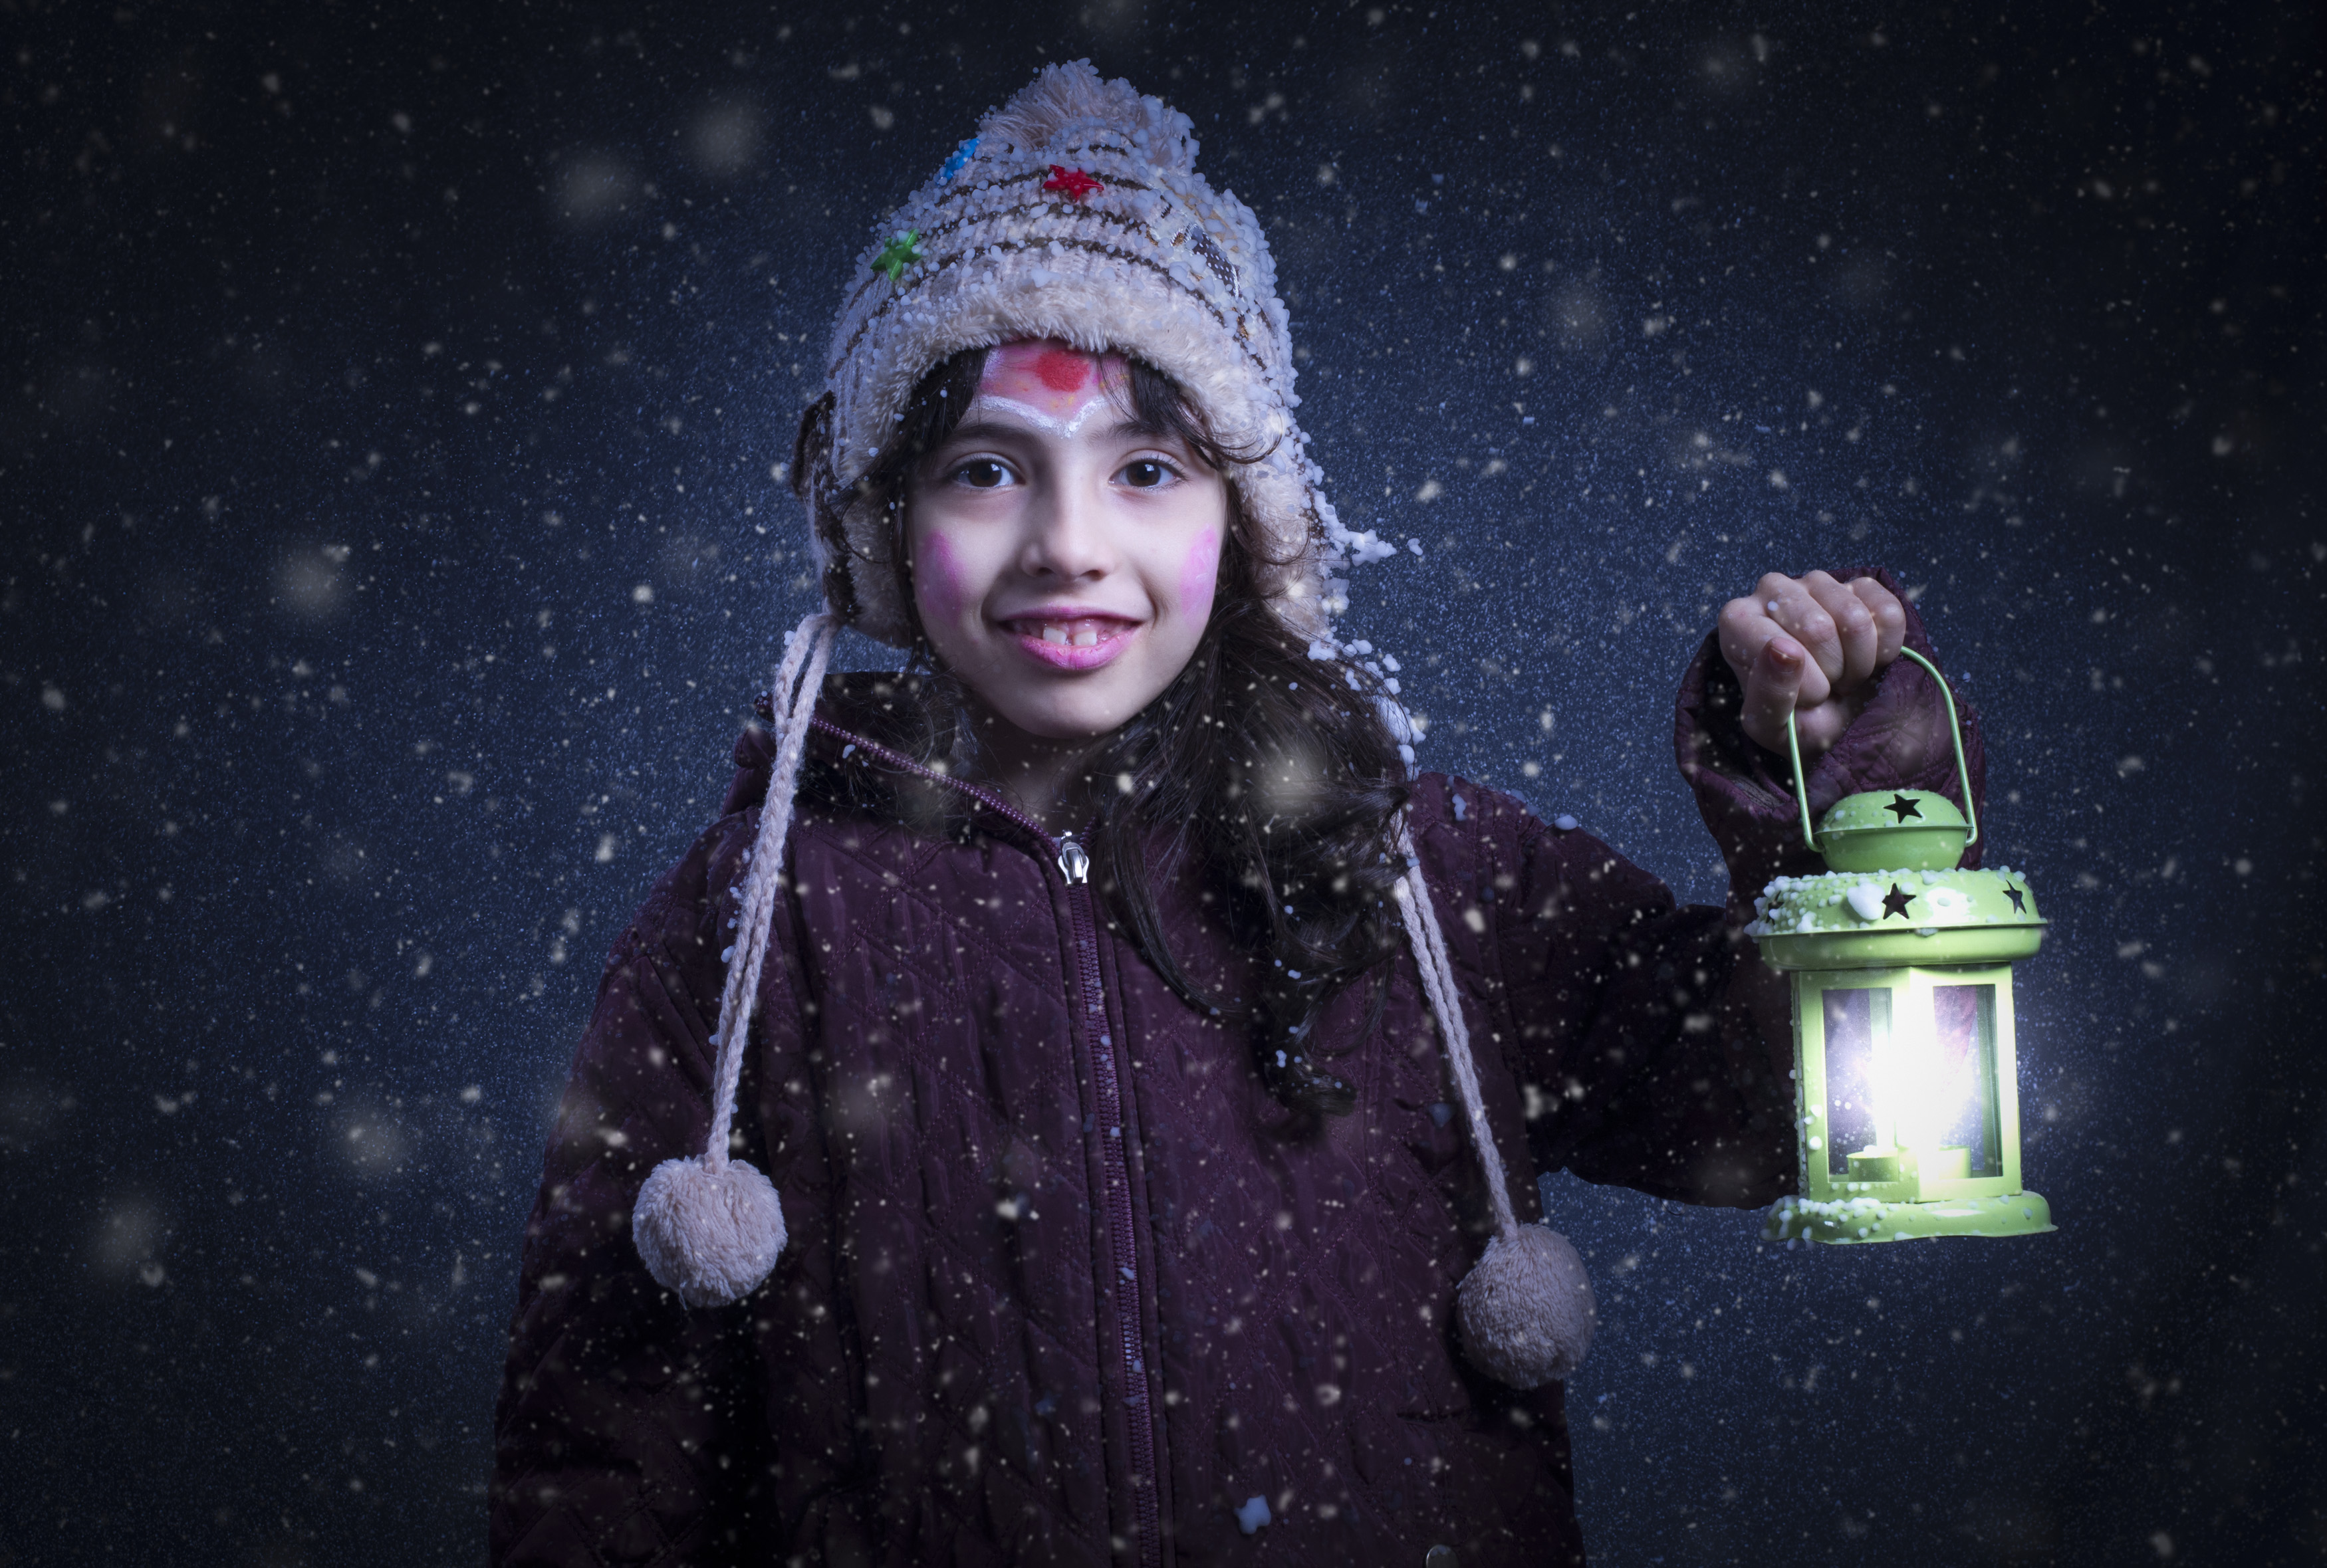 Girl Holding Green Lantern Lamp · Free Stock Photo for Girl Holding Lamp  157uhy